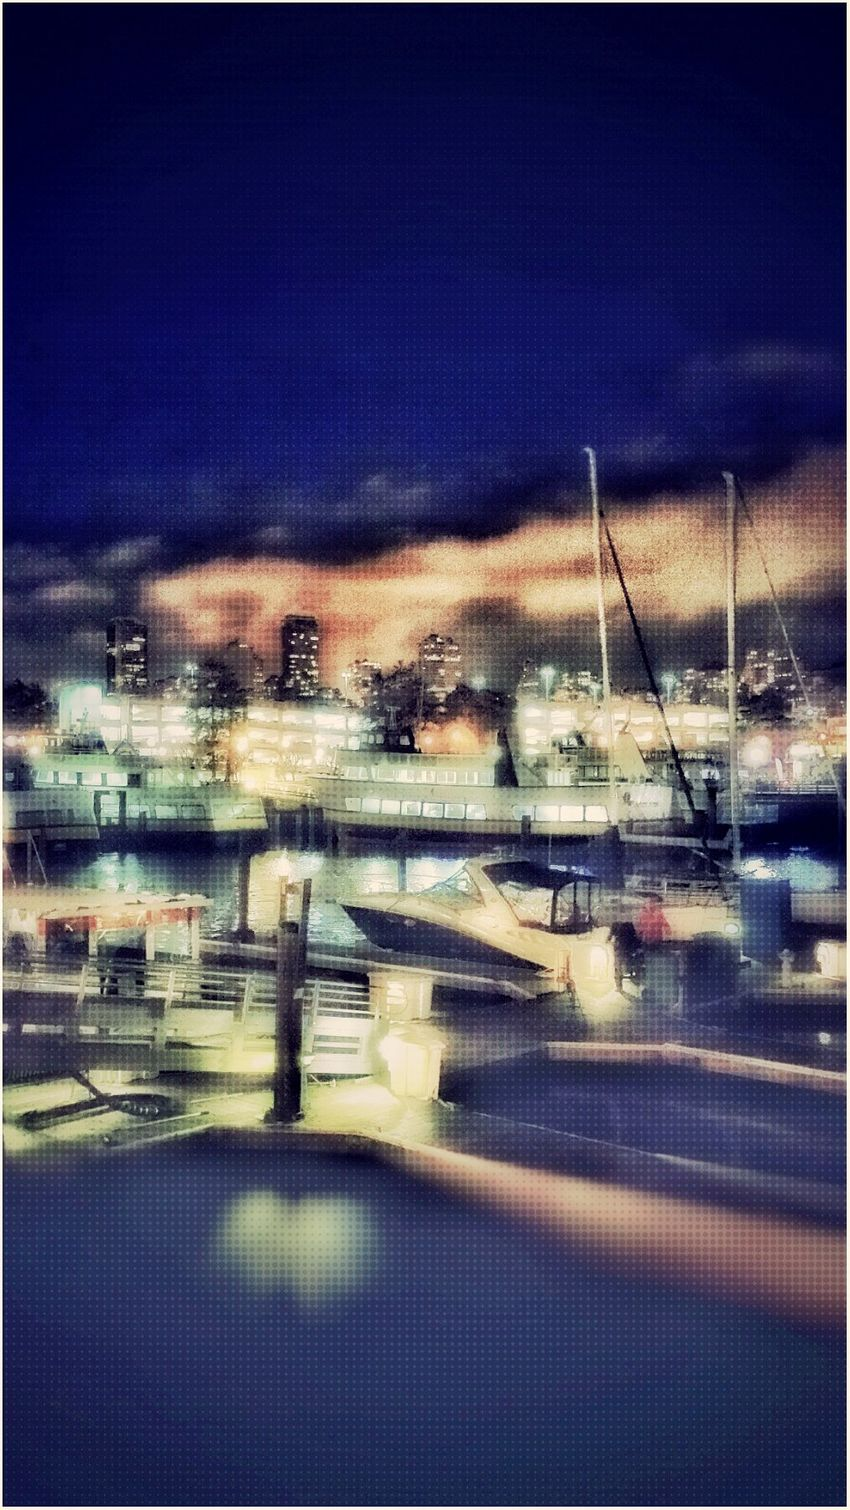 Pier39 Fishermanswharf SF Ourdayinthecity Justbecause Familyouting Beautifulevening Seals Me Mikey Lilvic Bigapril & Seleste Chillyweather  Clamchowderbowl GoodTimes Anothermemorie Coldevening Mylove Perfectshot Boats Lovemyfilters Beautifulview